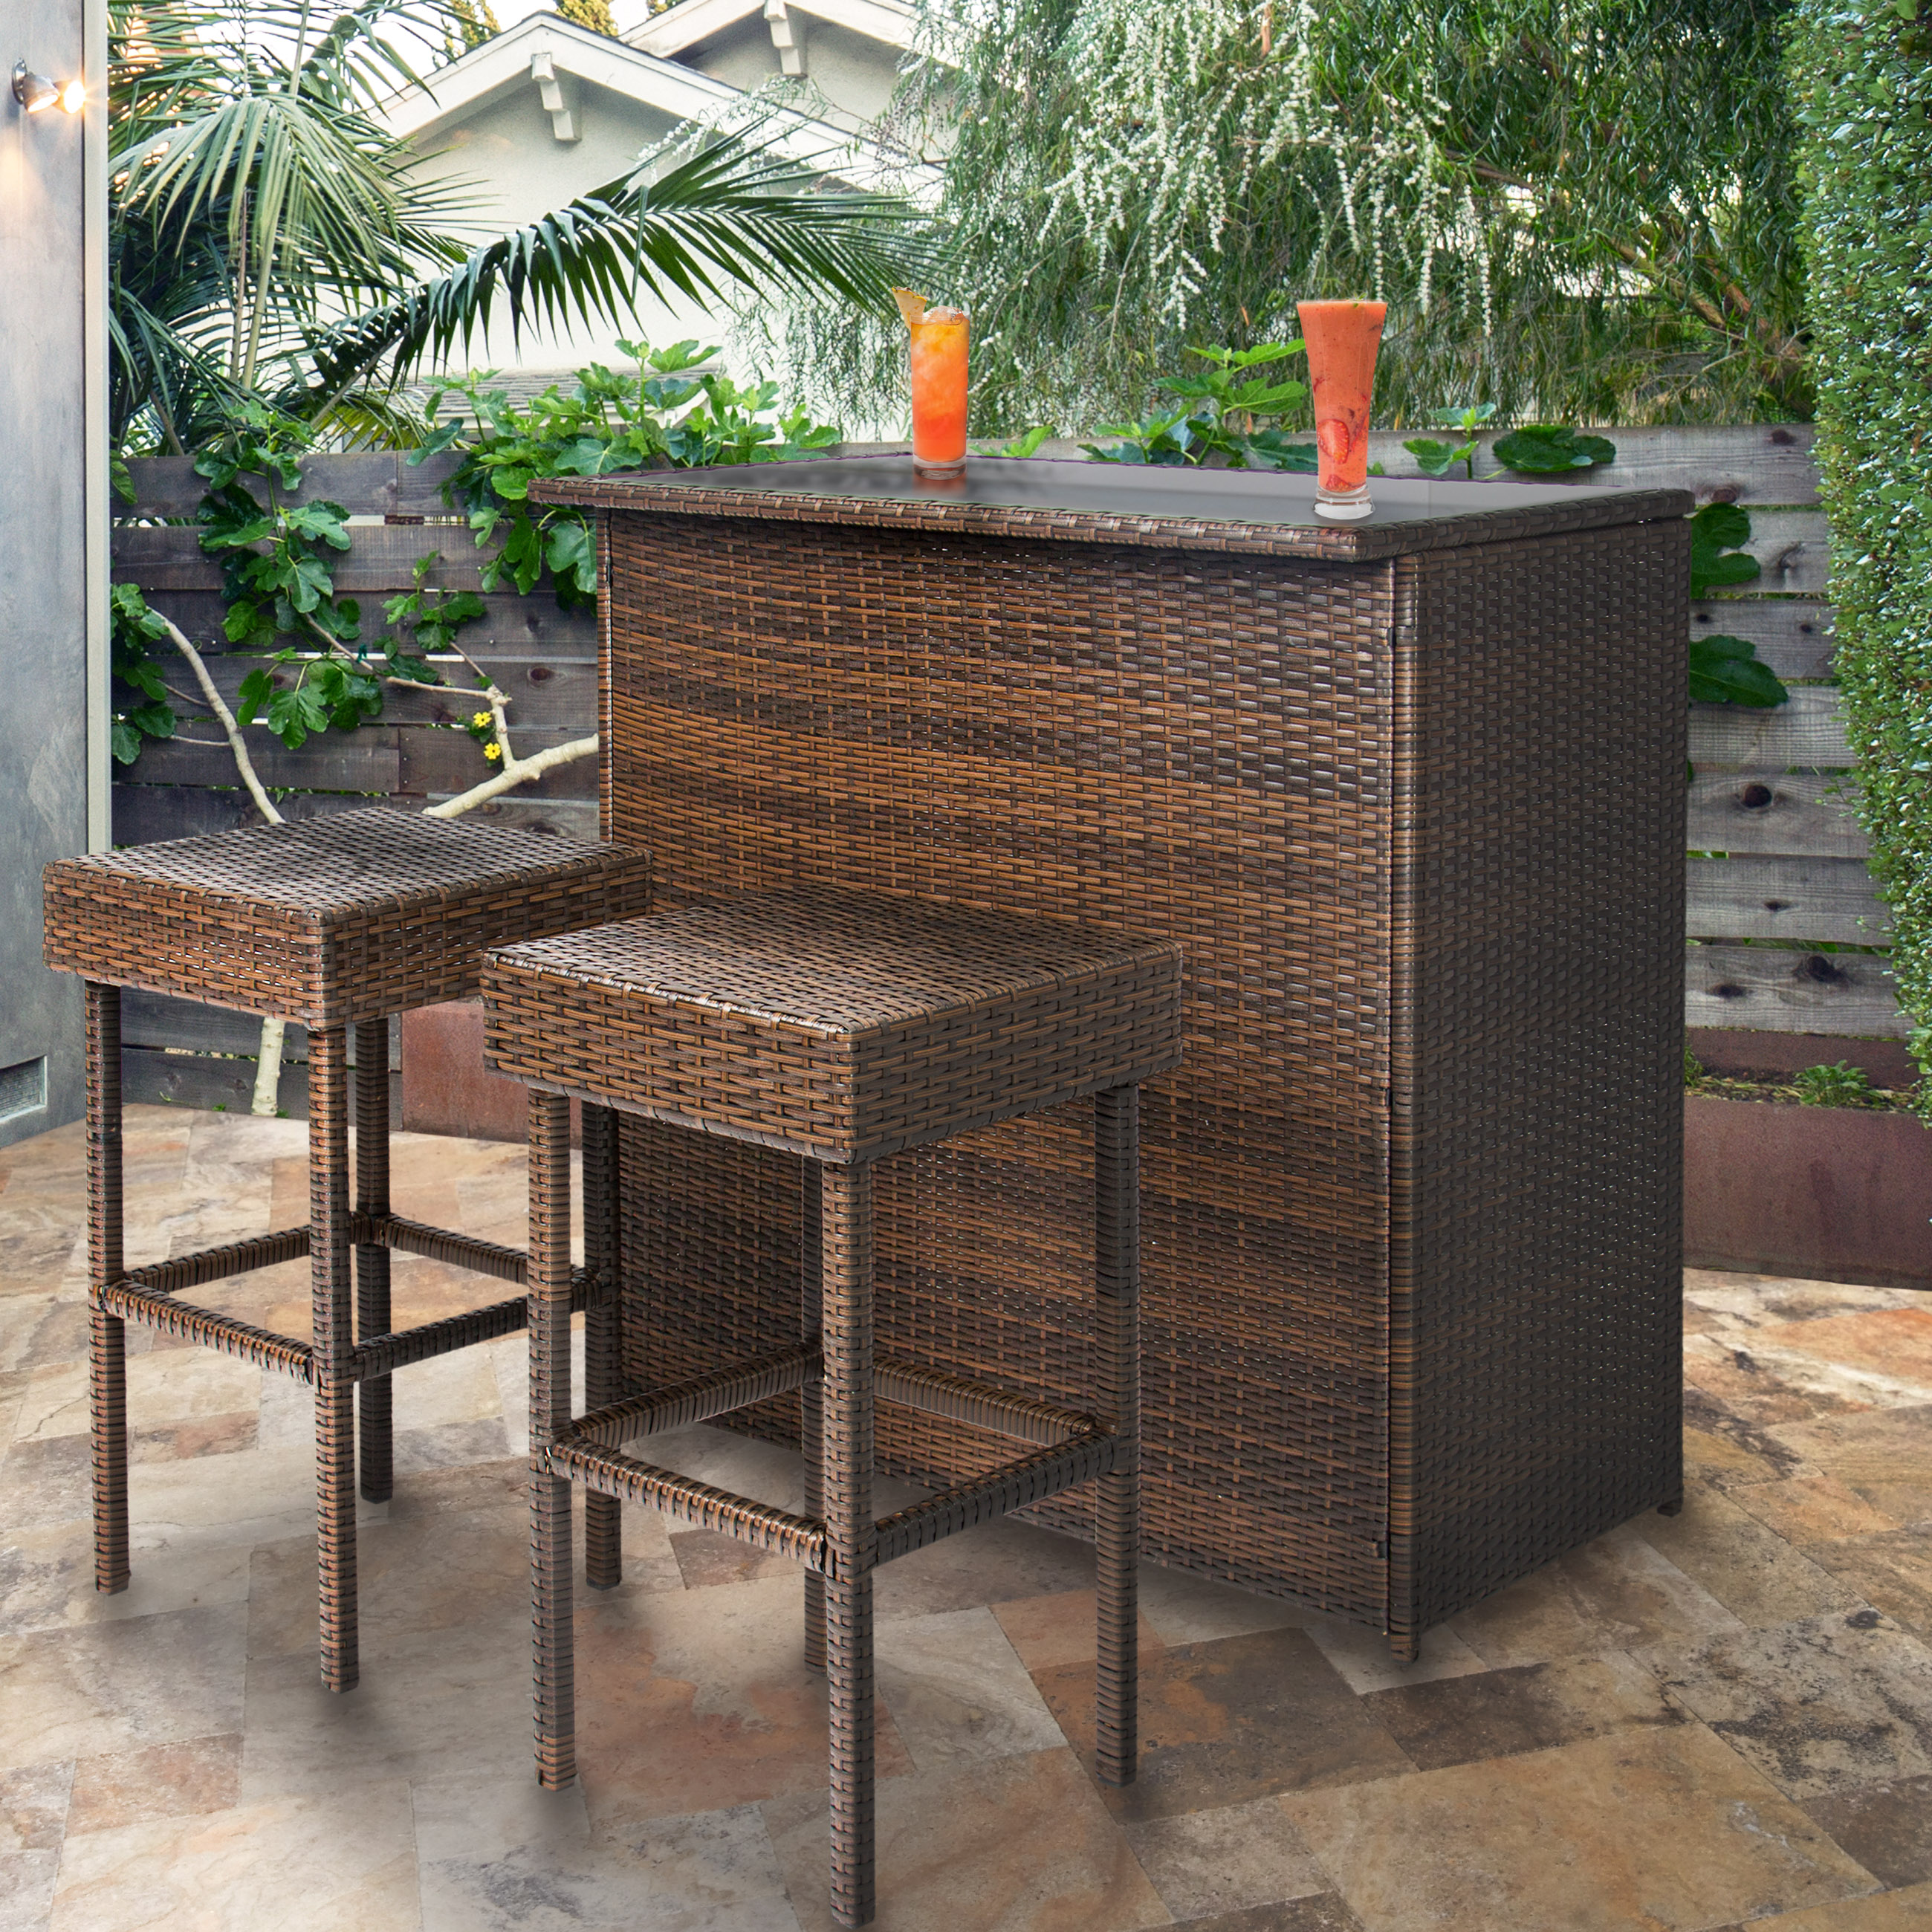 rattan furniture best choice products 3pc wicker bar set patio outdoor backyard table EKWNRFV